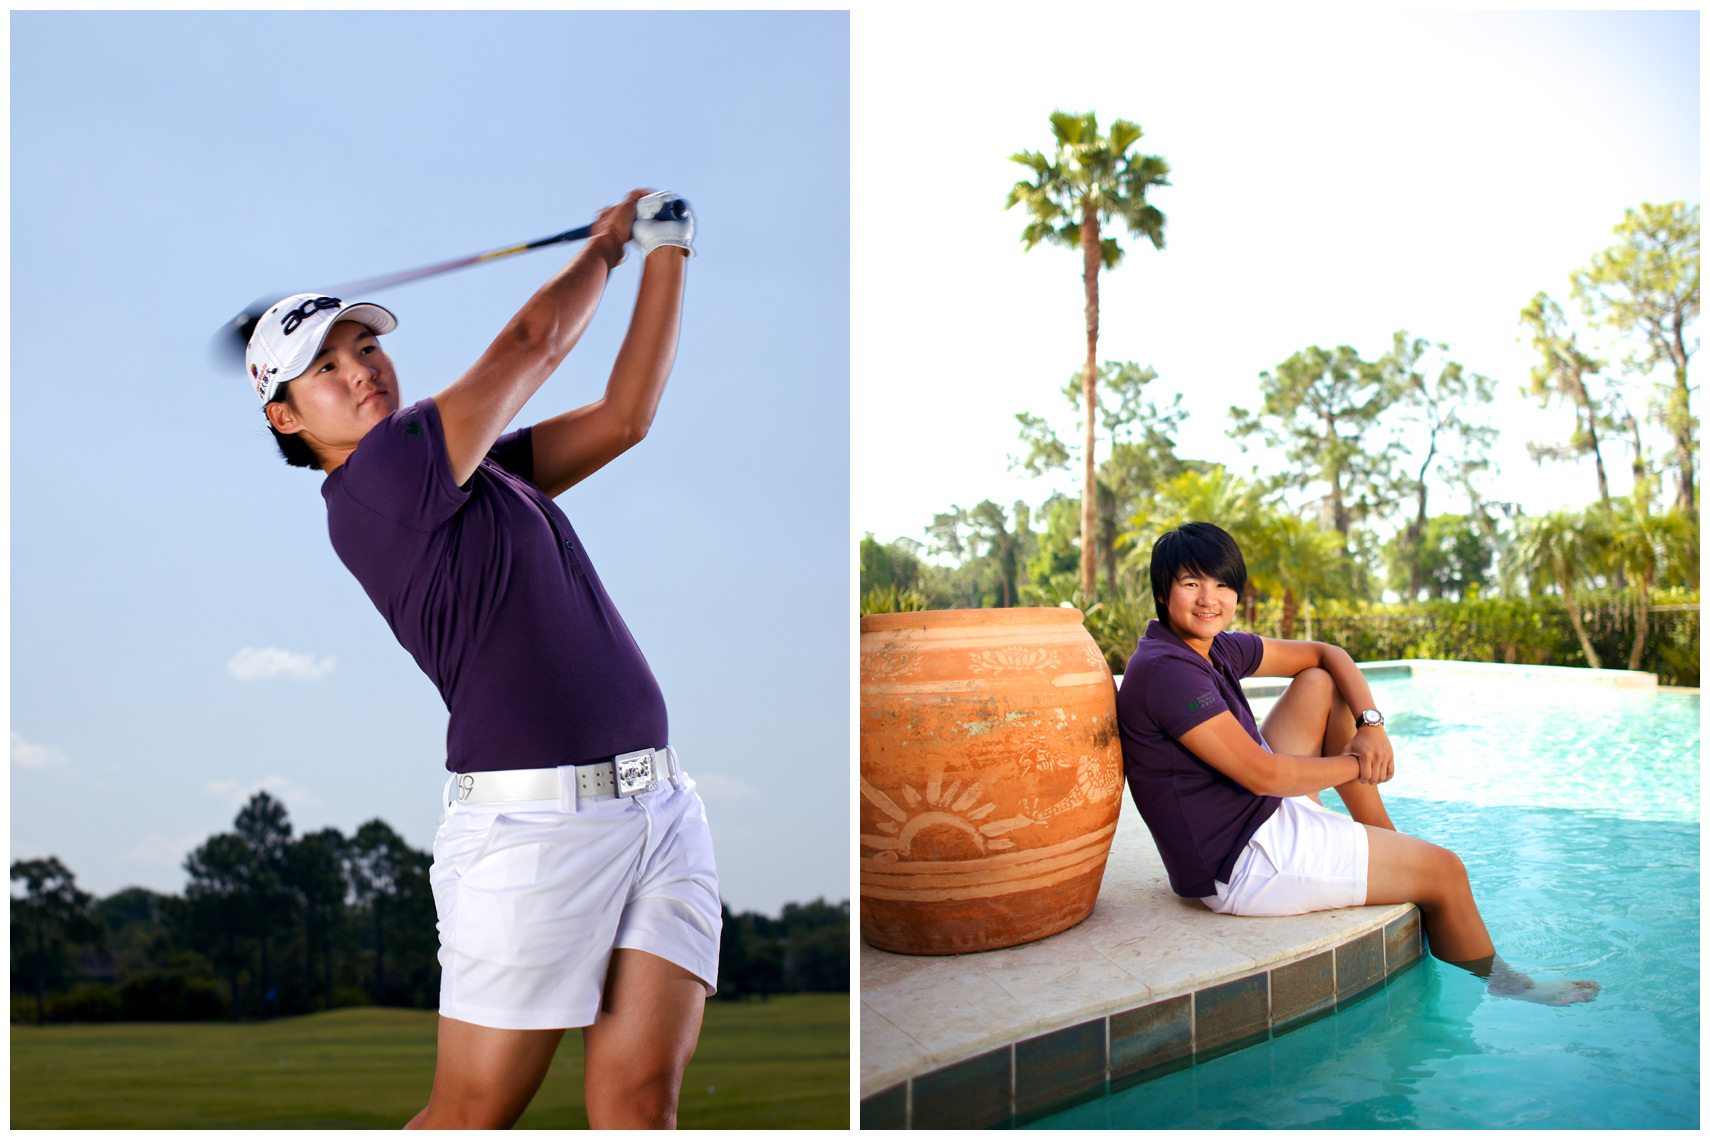 Yani Tseng Location Portrait and Swing Sequence for Svensk Golf